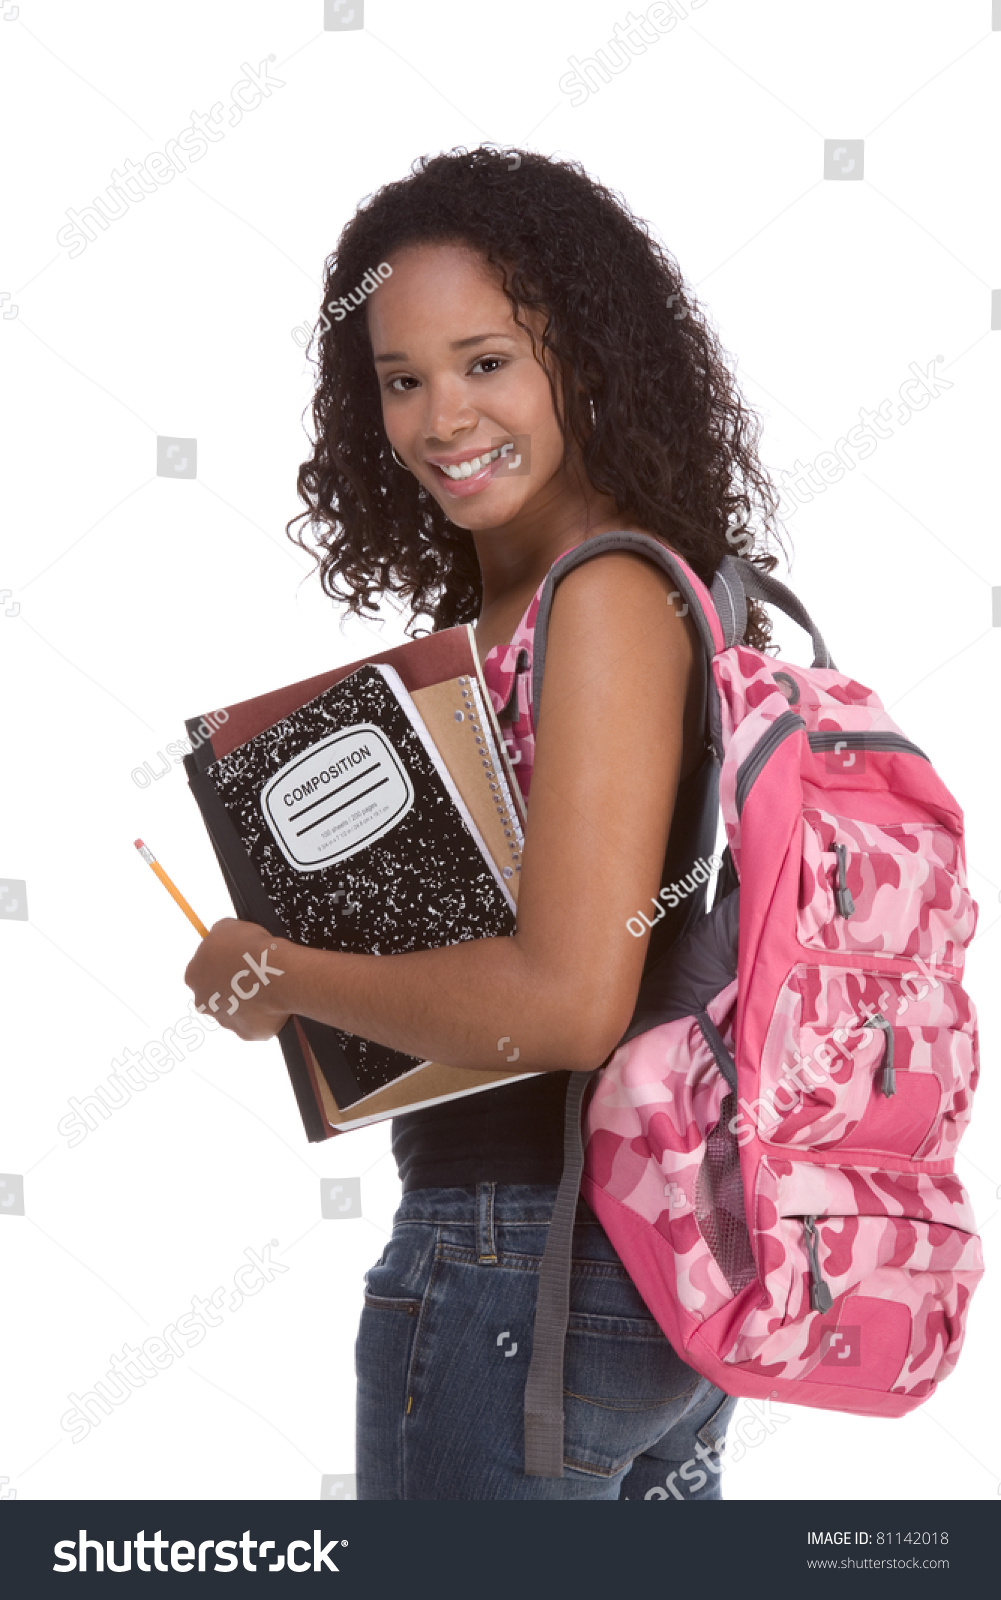 Backpacks For High School Students - Crazy Backpacks